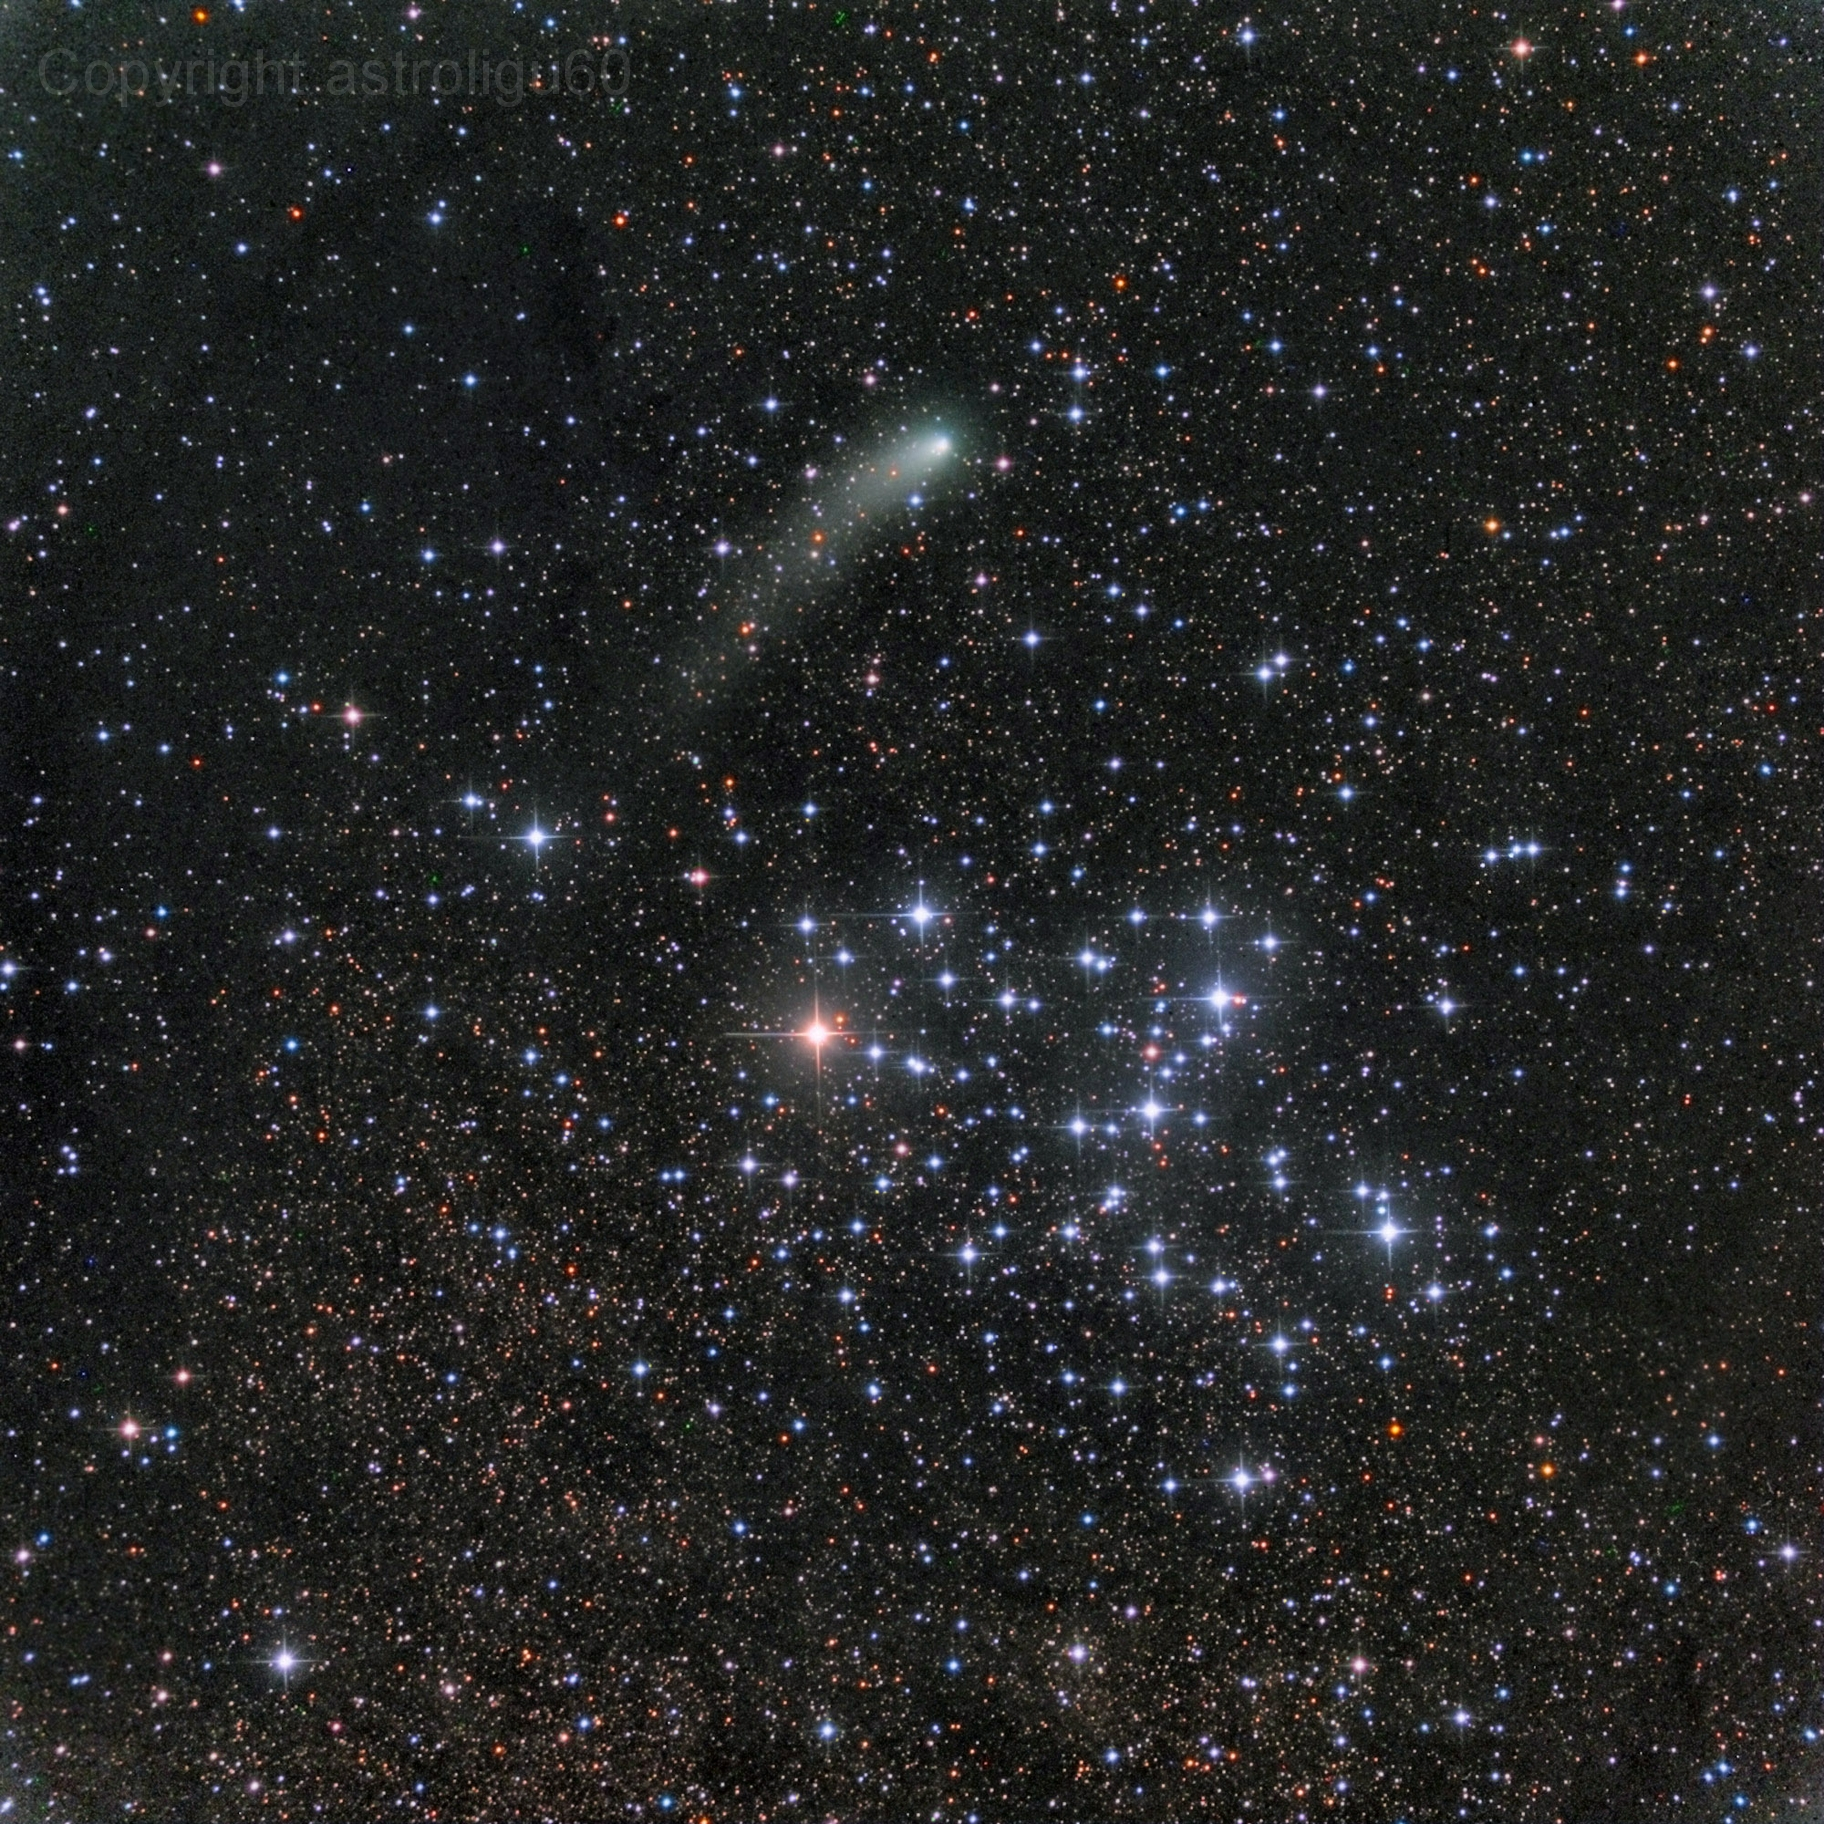 Apod 2014 October 17 Messier 6 And Comet Siding Spring